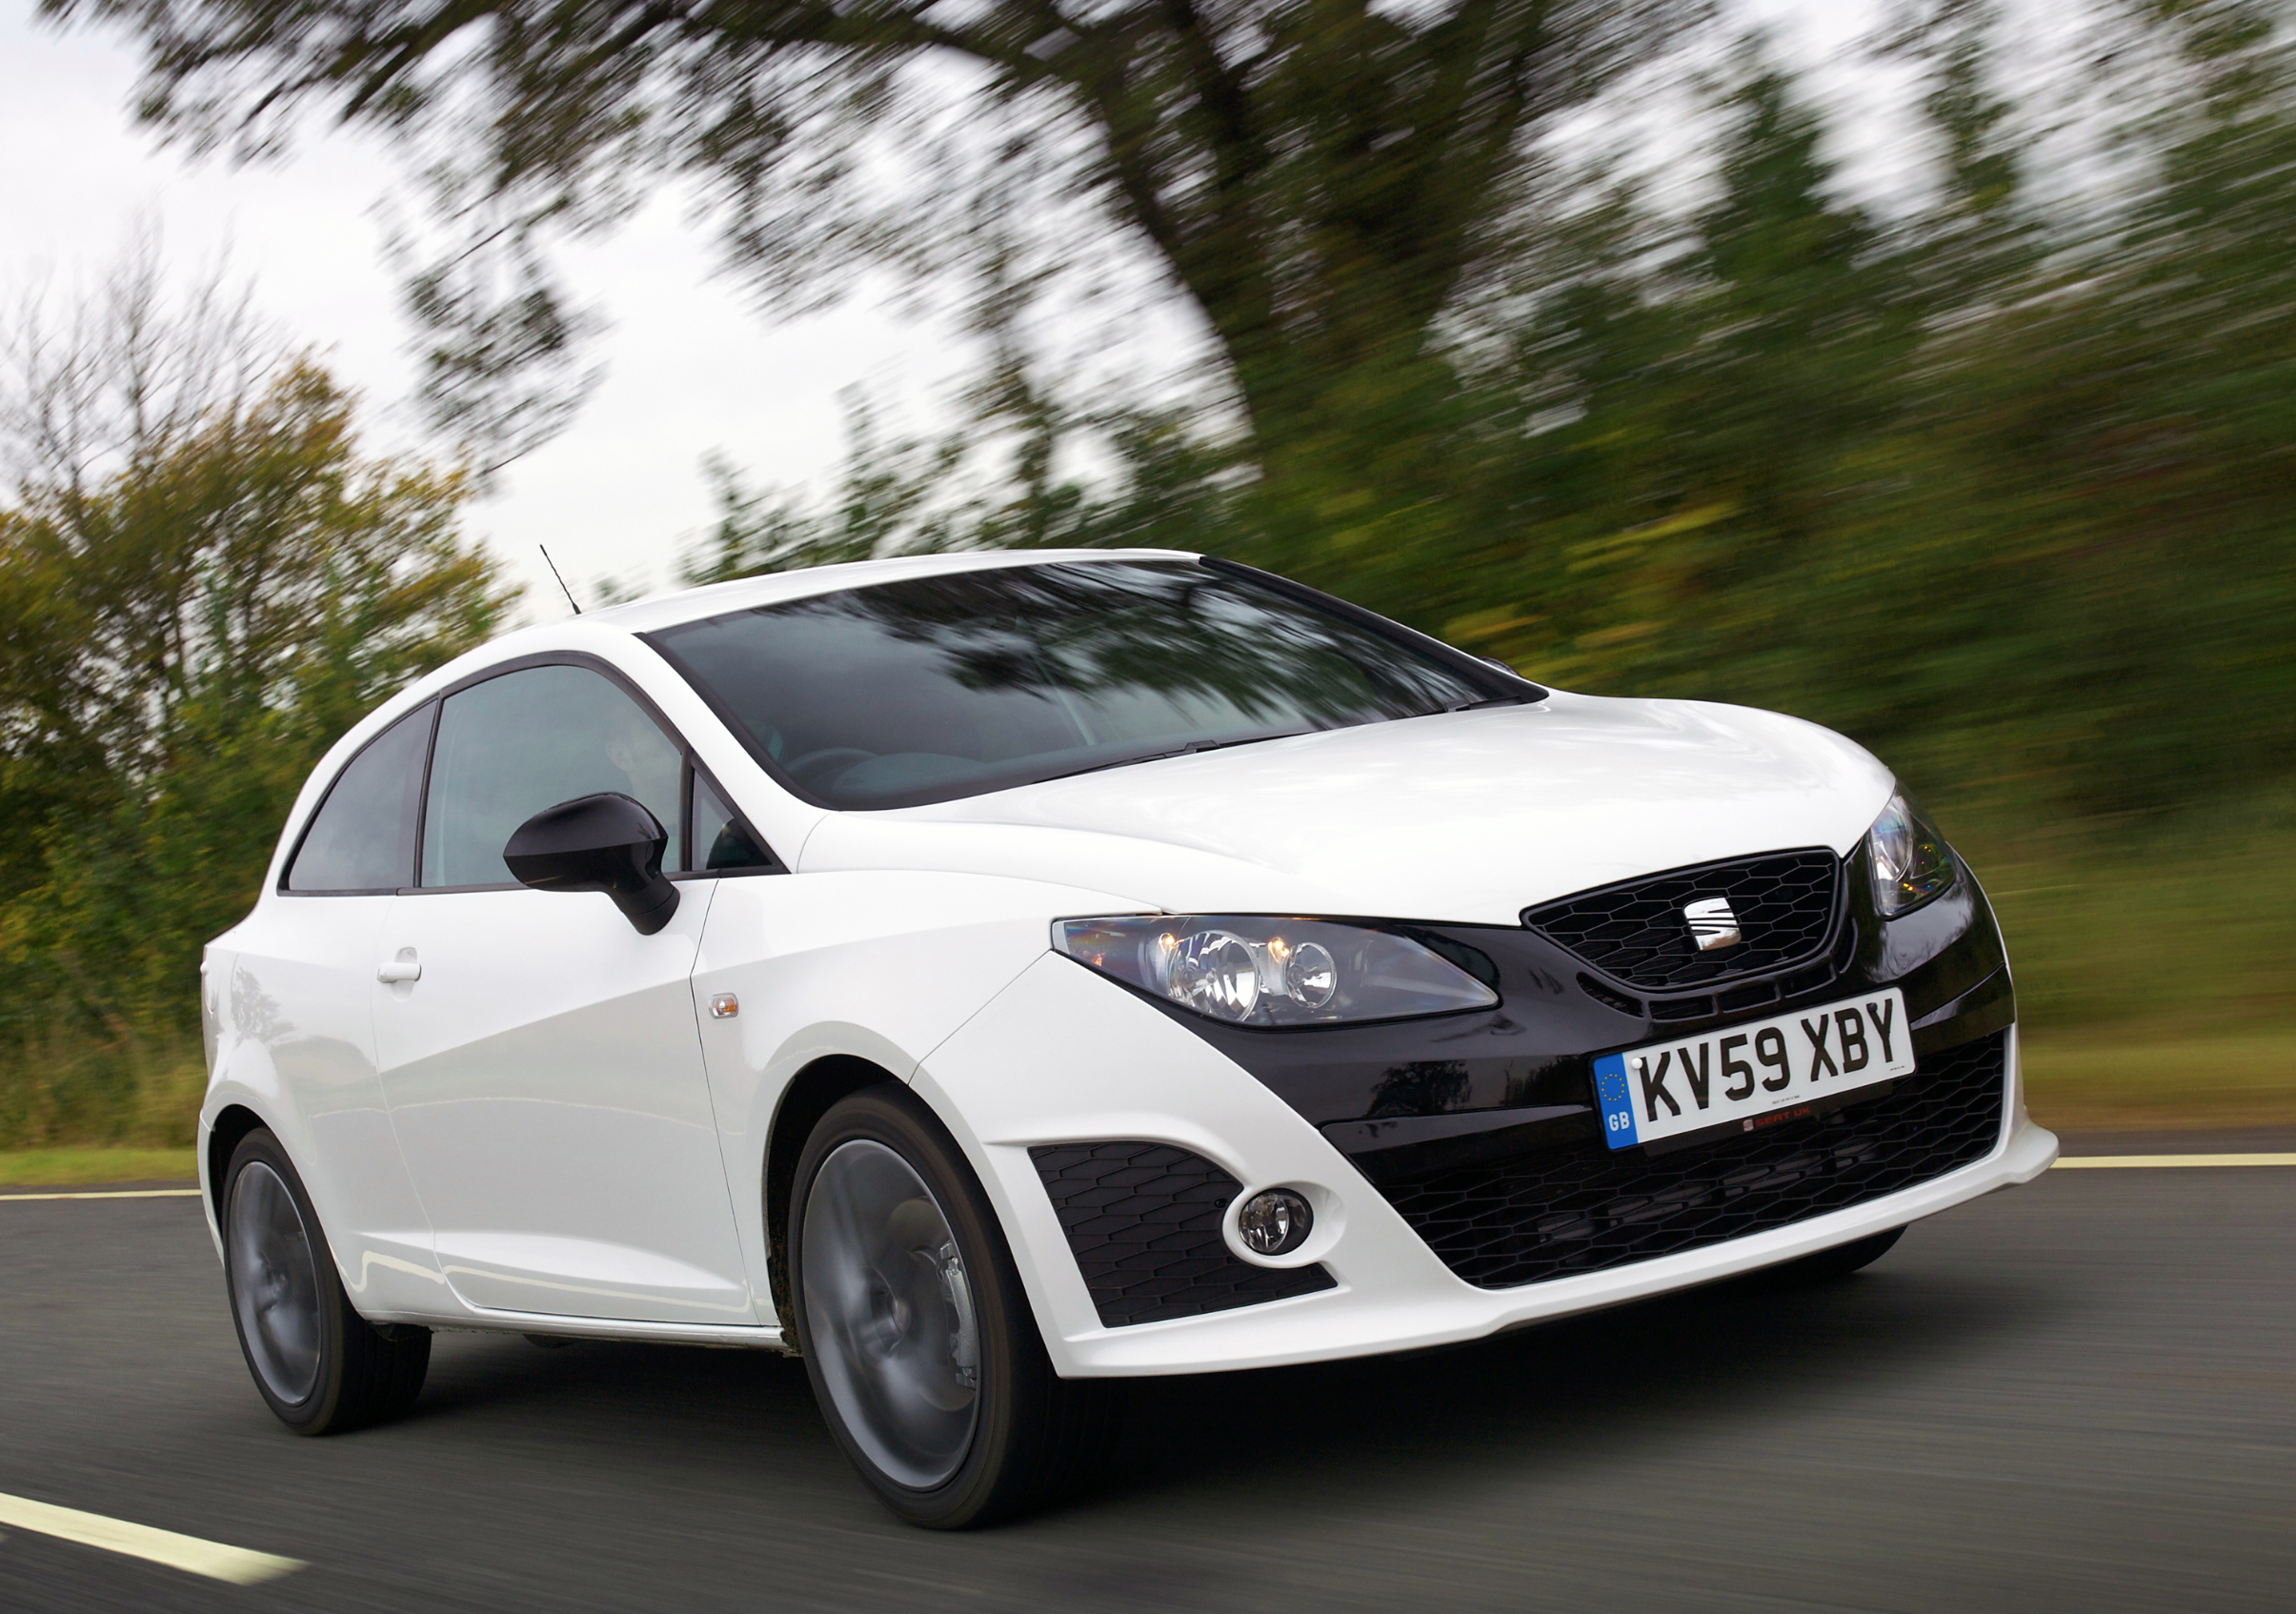 The Ibiza Bocanegra takes its name from an affectionate nickname for the 1200 Sport. (Seat)